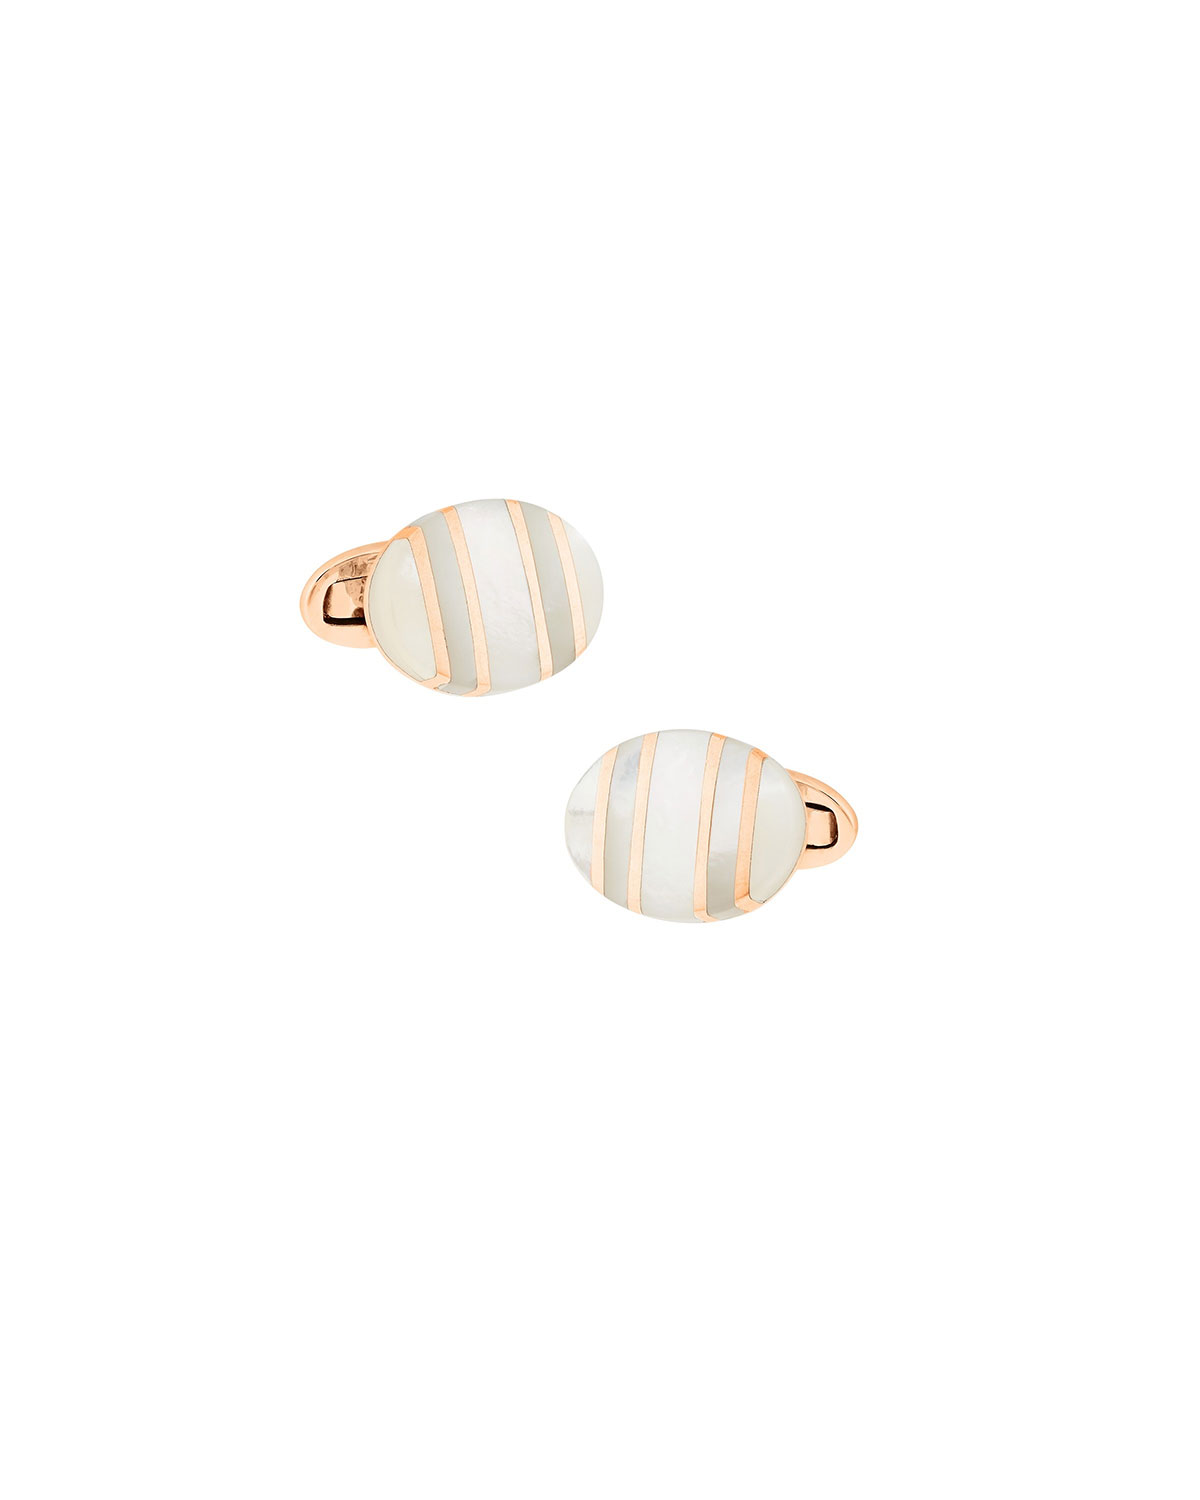 Men's Rose Gold Mother of Pearl Cufflinks